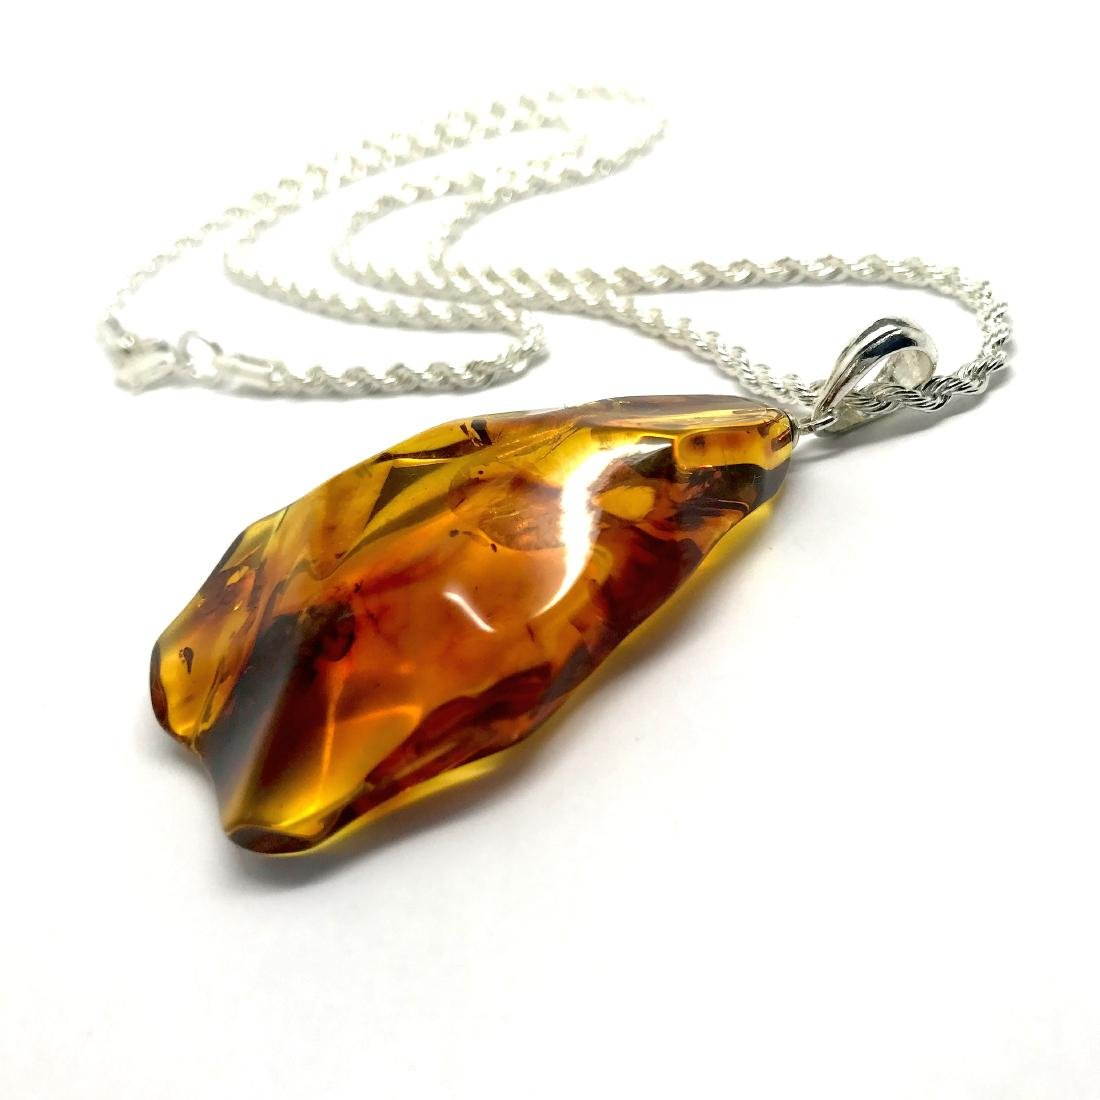 Vintage Baltic amber carved pendant 6x3cm silver 925 - 4